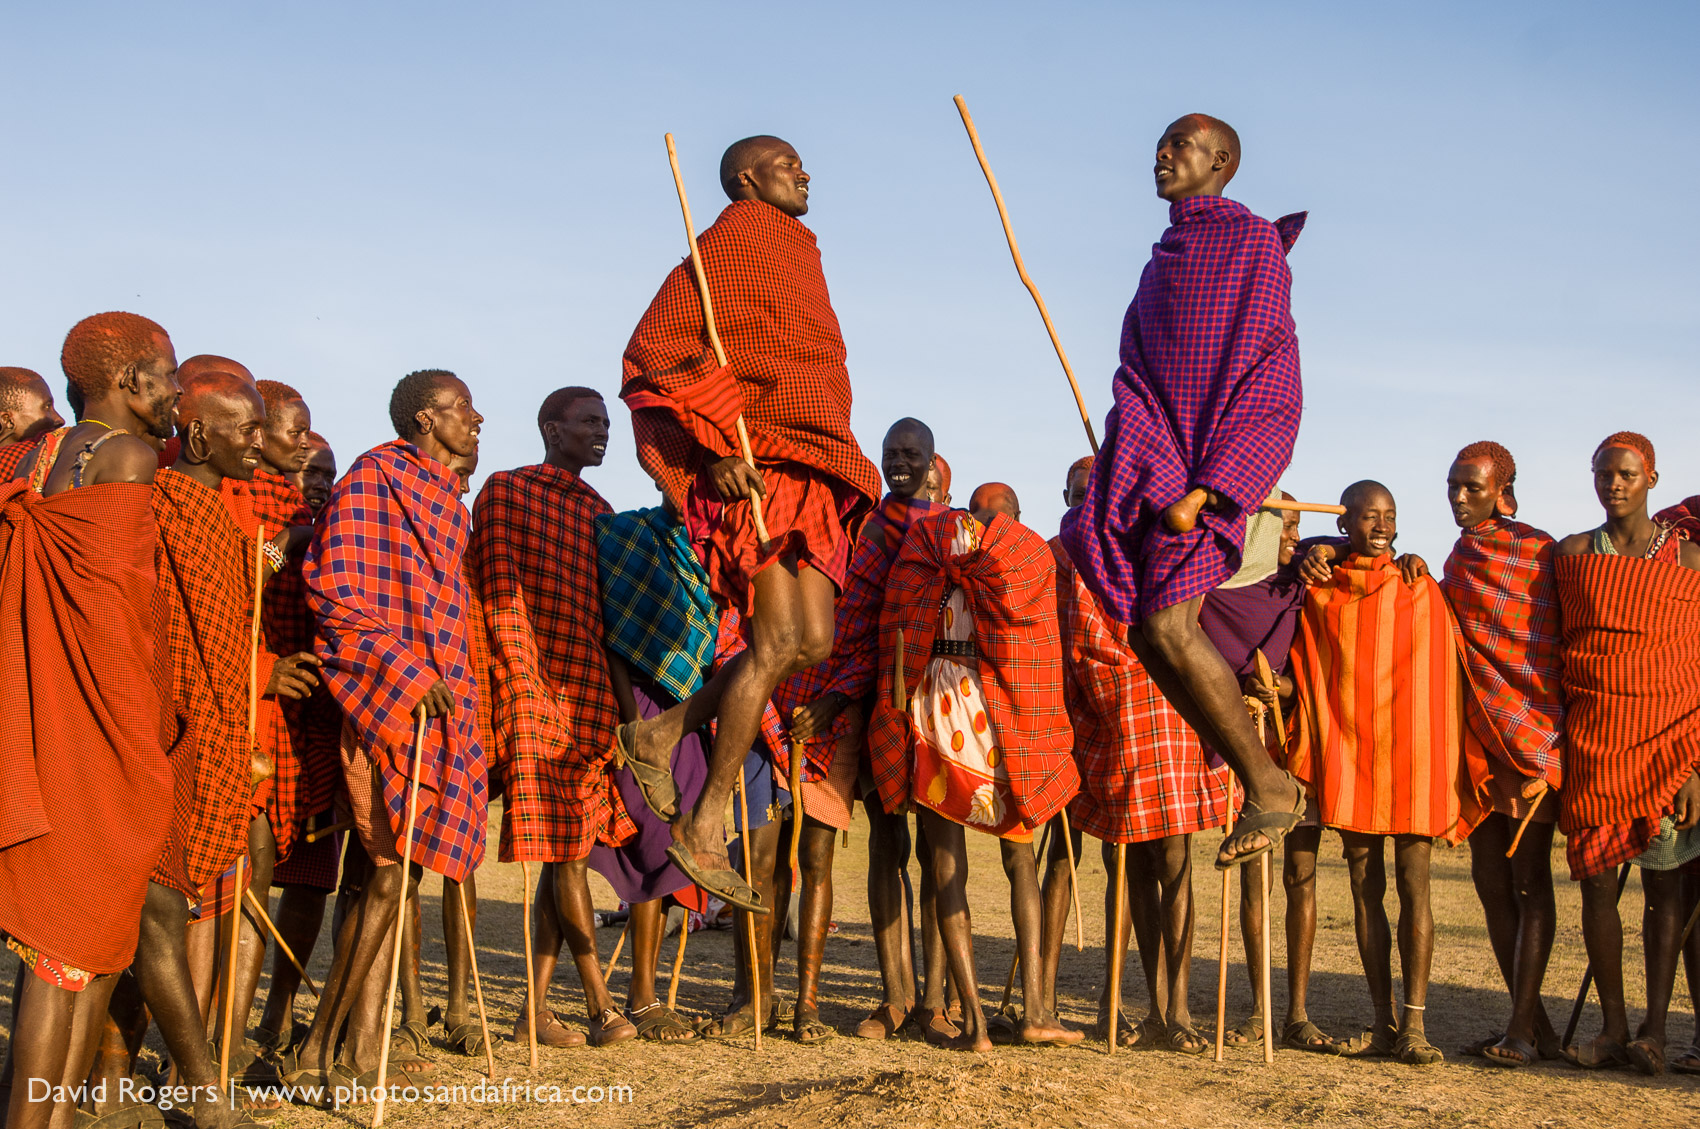 Tanzania, Loliondo, bordering the Serengeti, Maasai dancers. © David Rogers